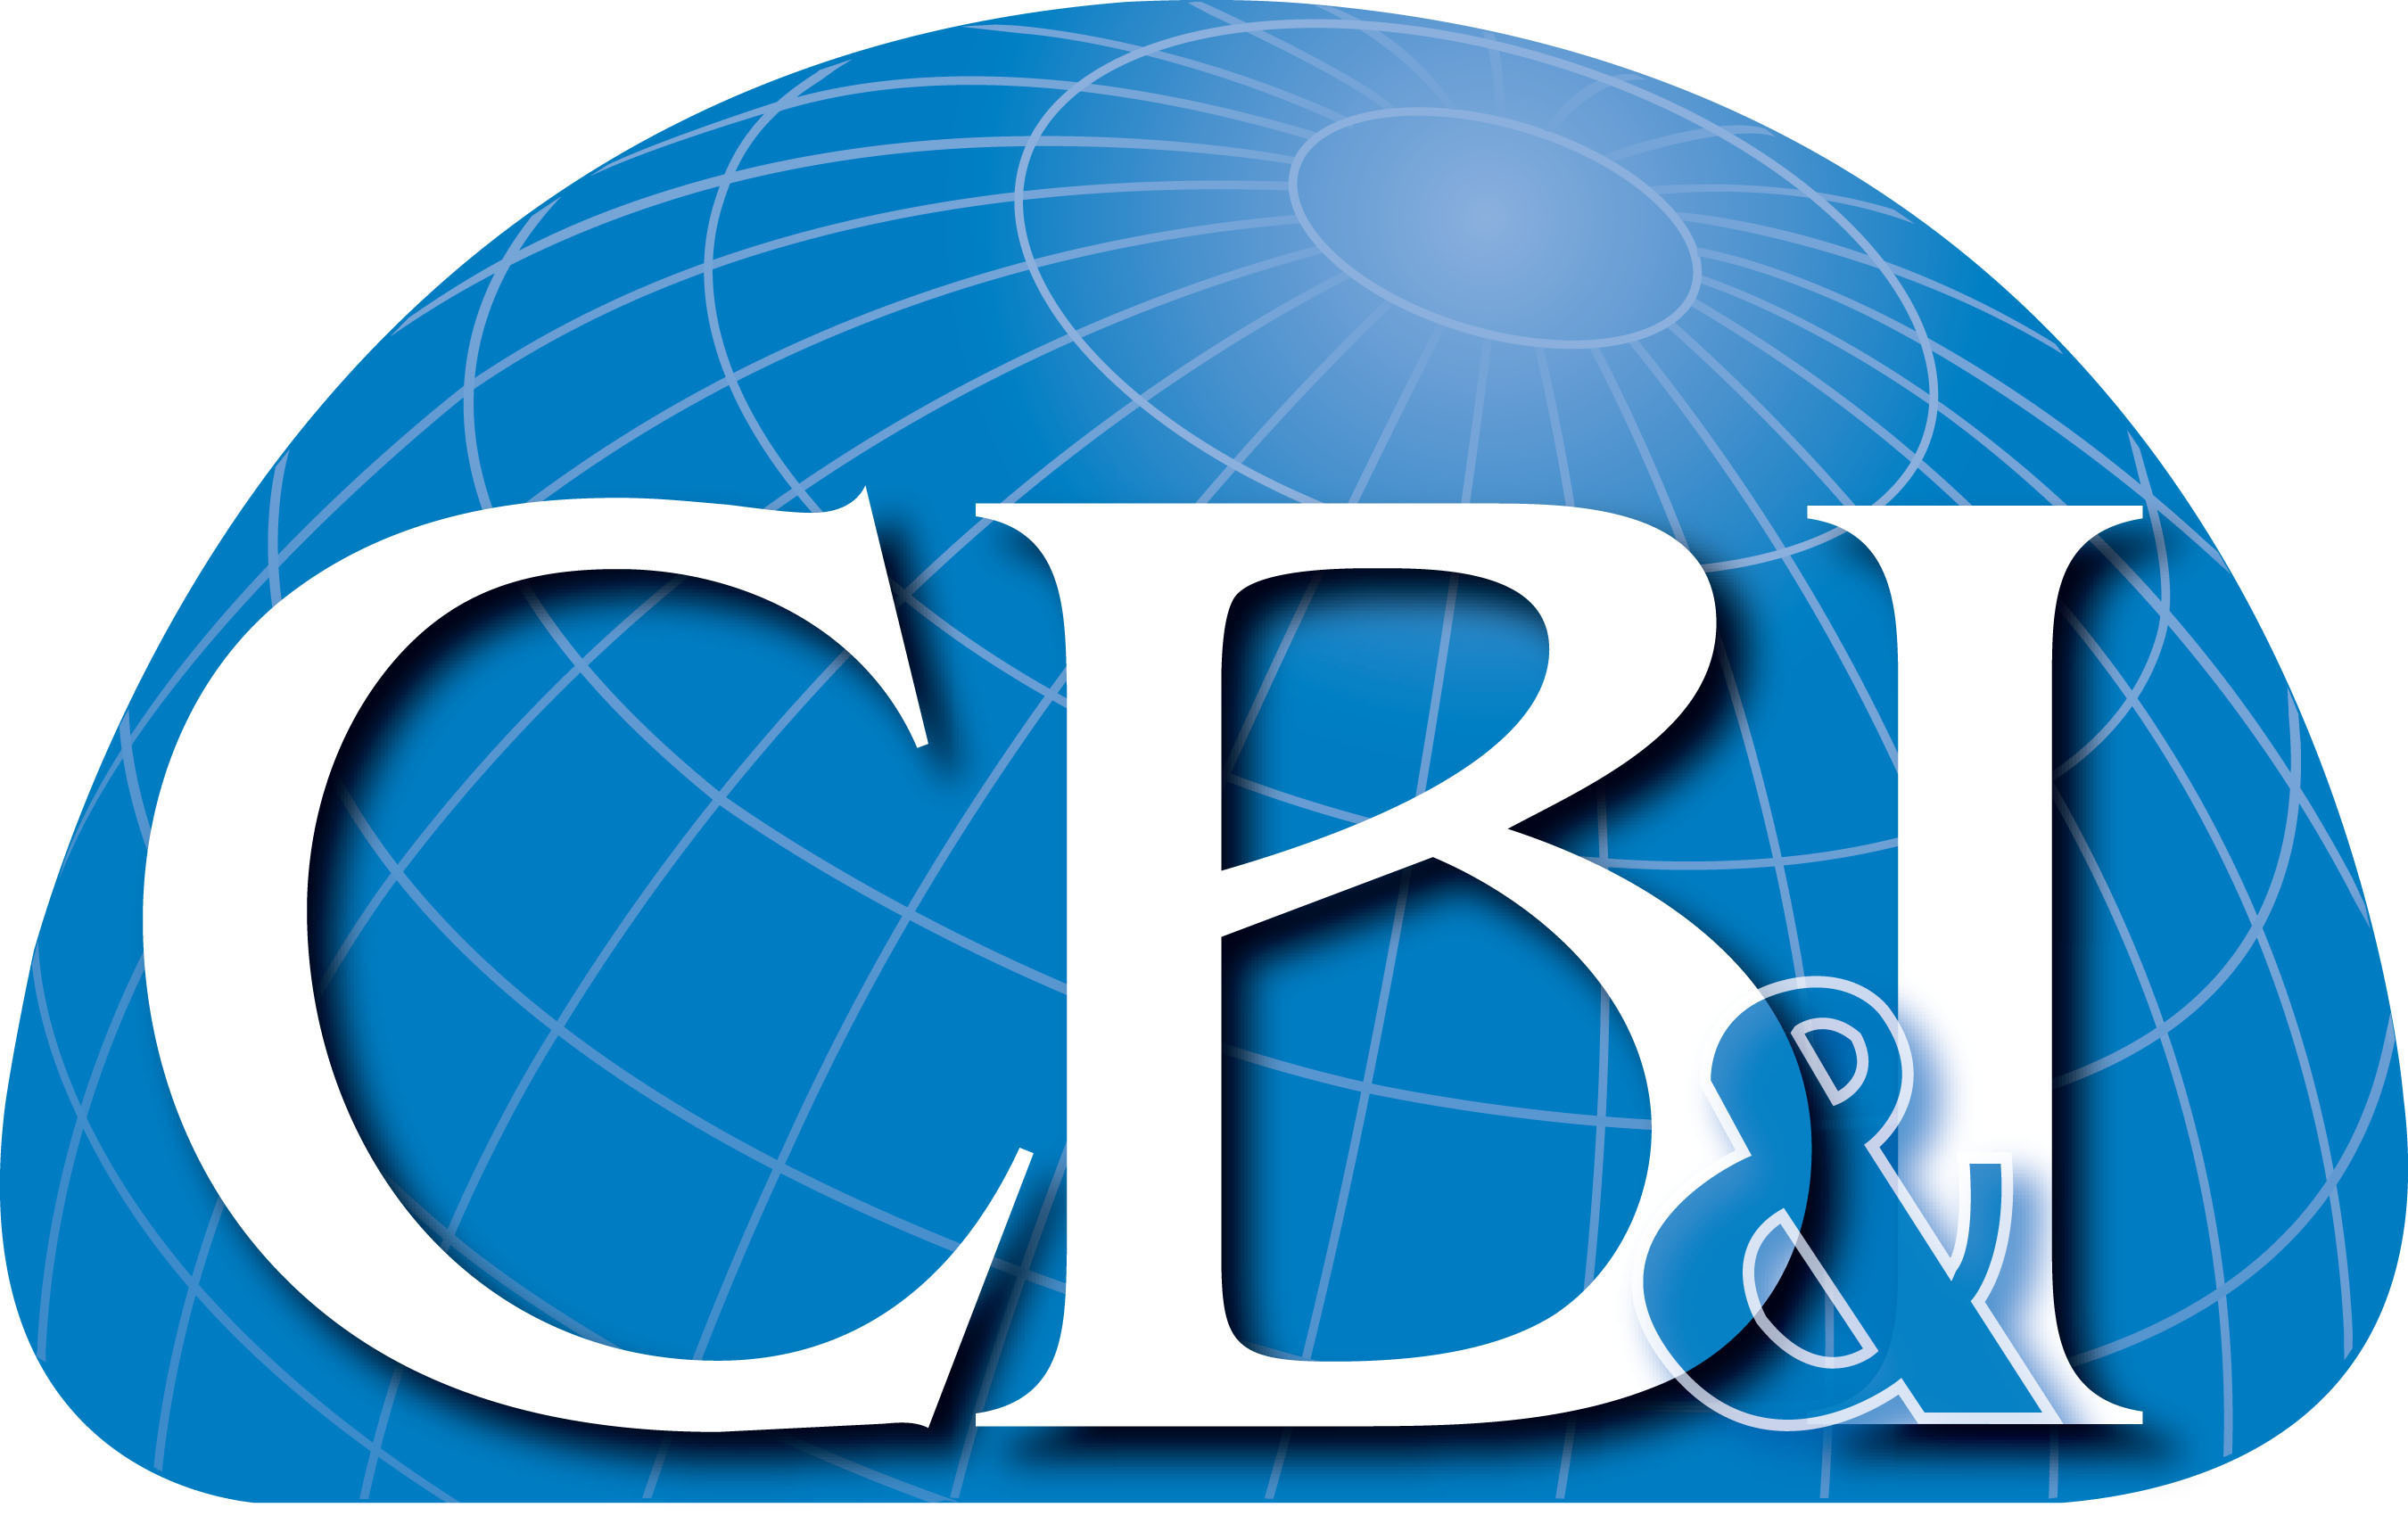 CB&I Awarded Contract for ADNOC Refining Crude Flexibility